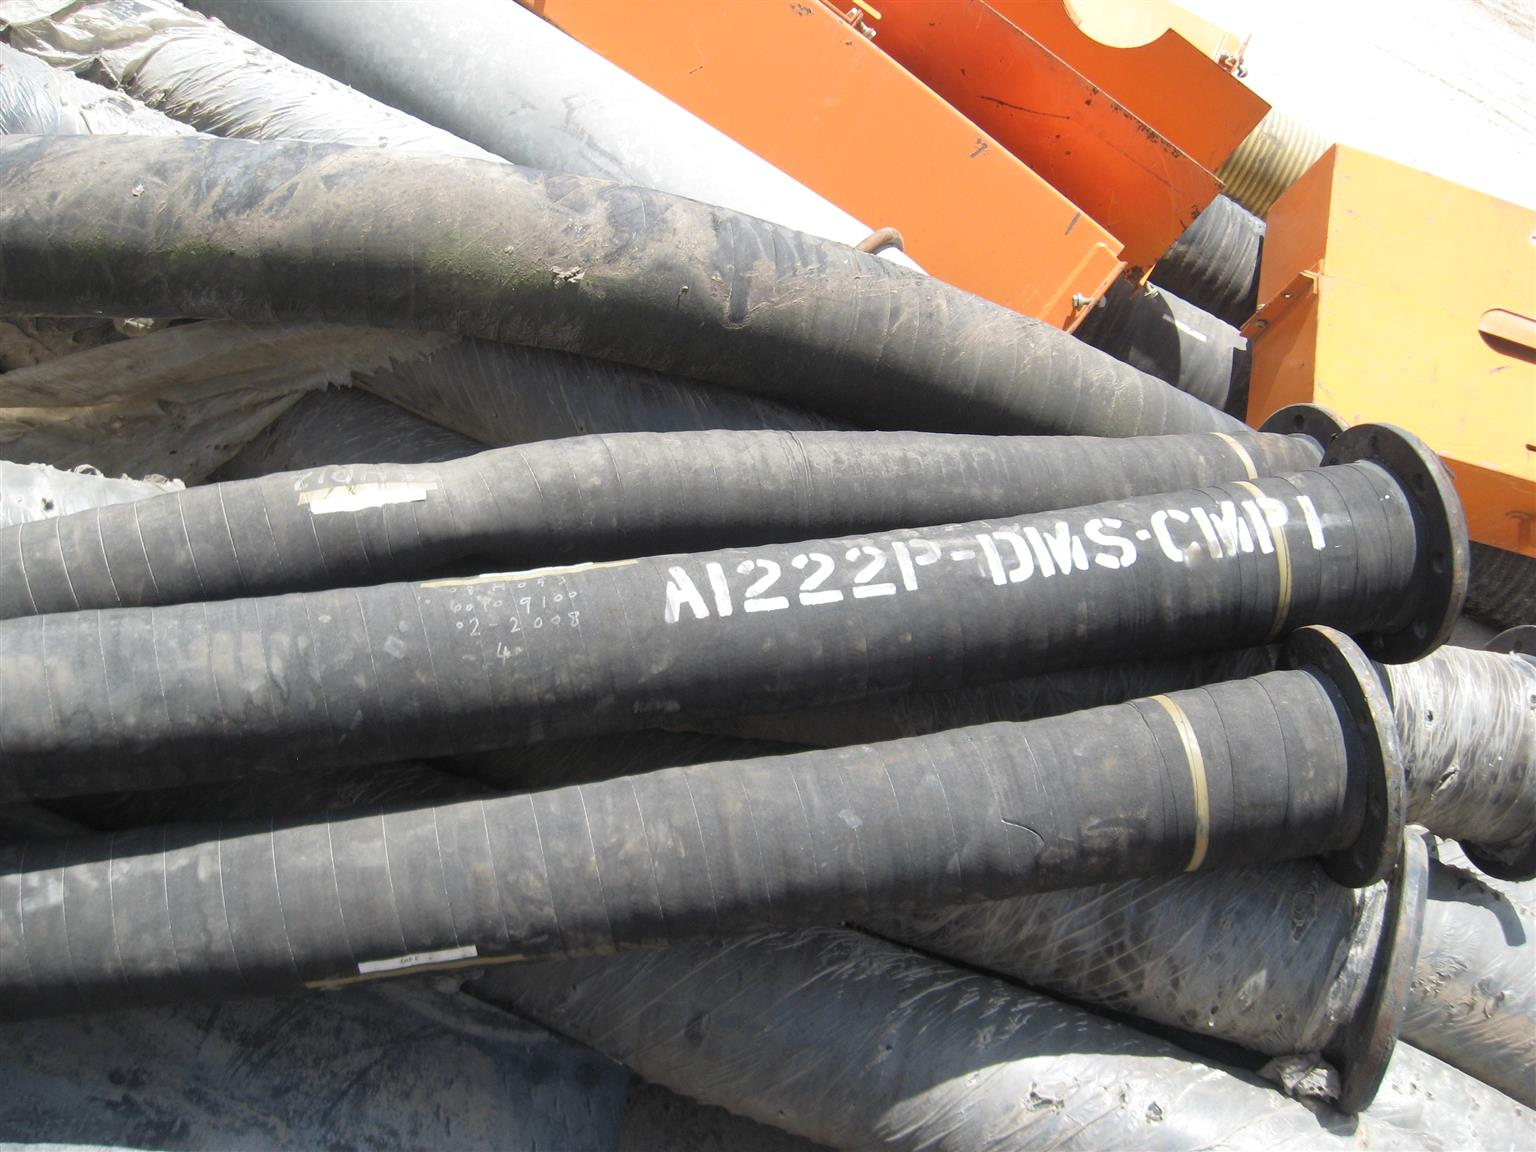 Mostly only new unused INDUSTRIAL HEAVY DUTY Water  or Sludge Pipes Cost new over R7000 each